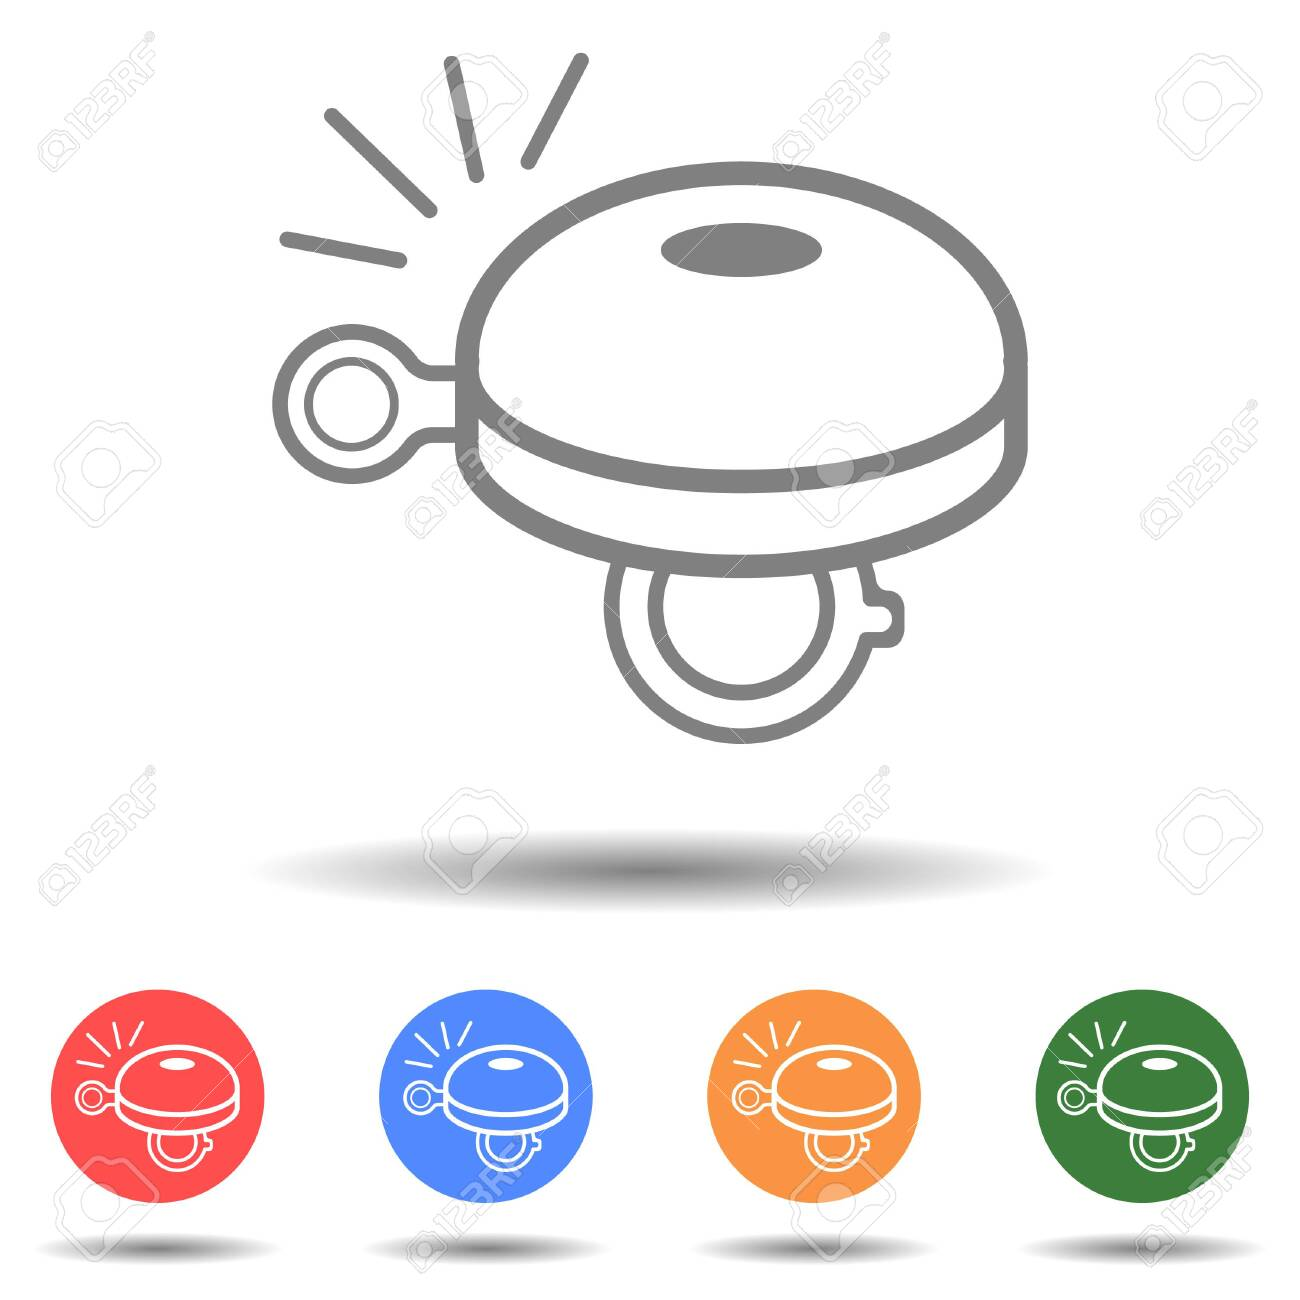 Bicycle bell icon vector isolated on background - 155054599